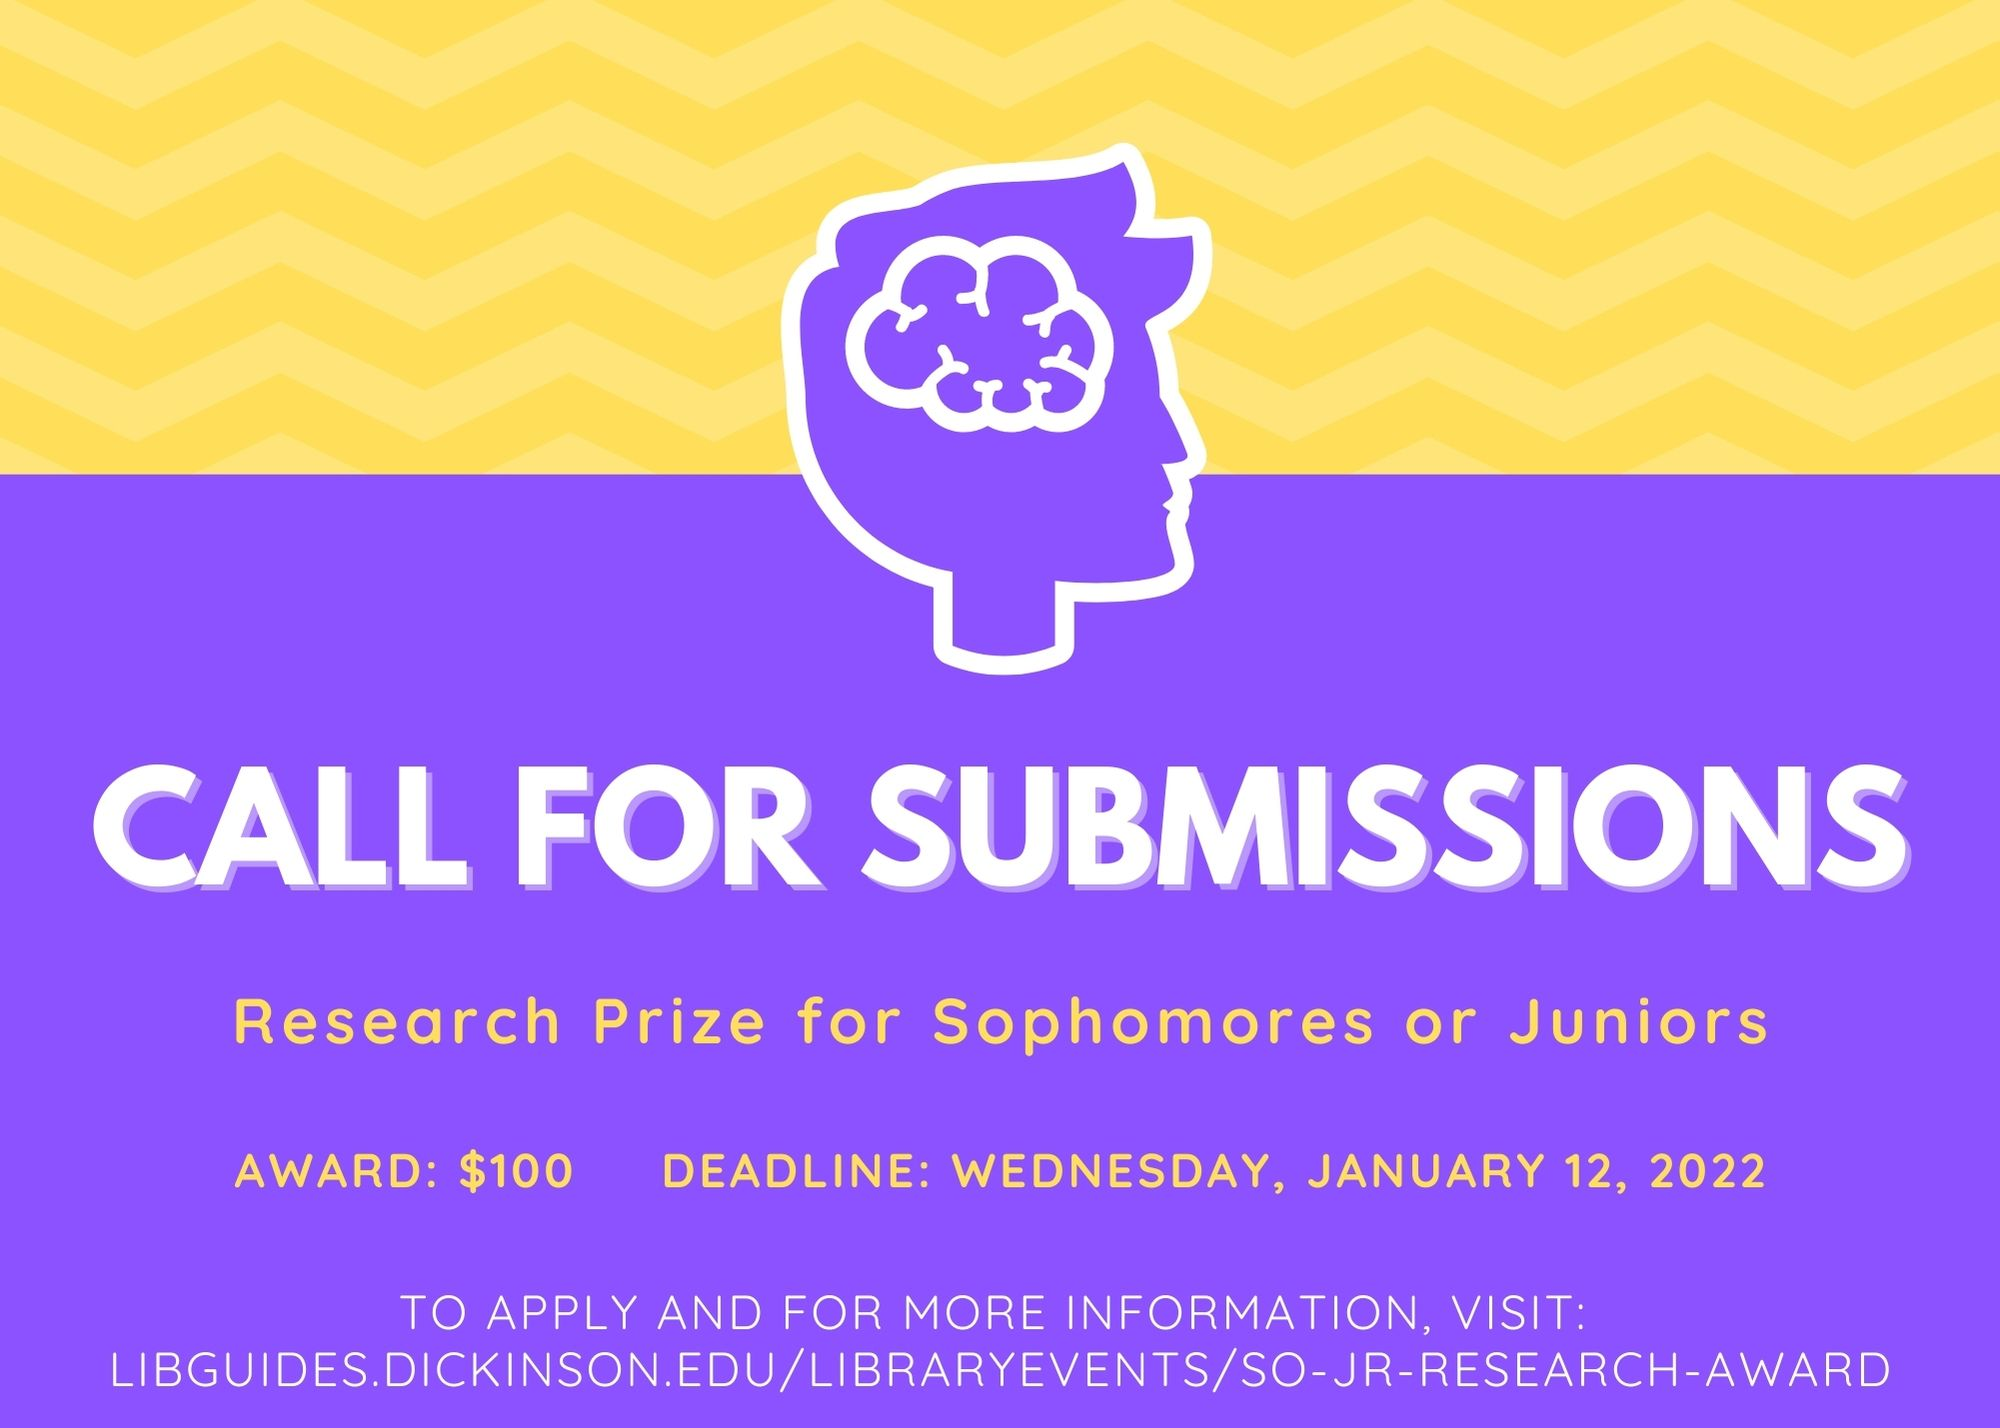 Call for Submissions. Library Research Prize for Sophomores or Juniors. Deadline: Wednesday, January 12, 2022